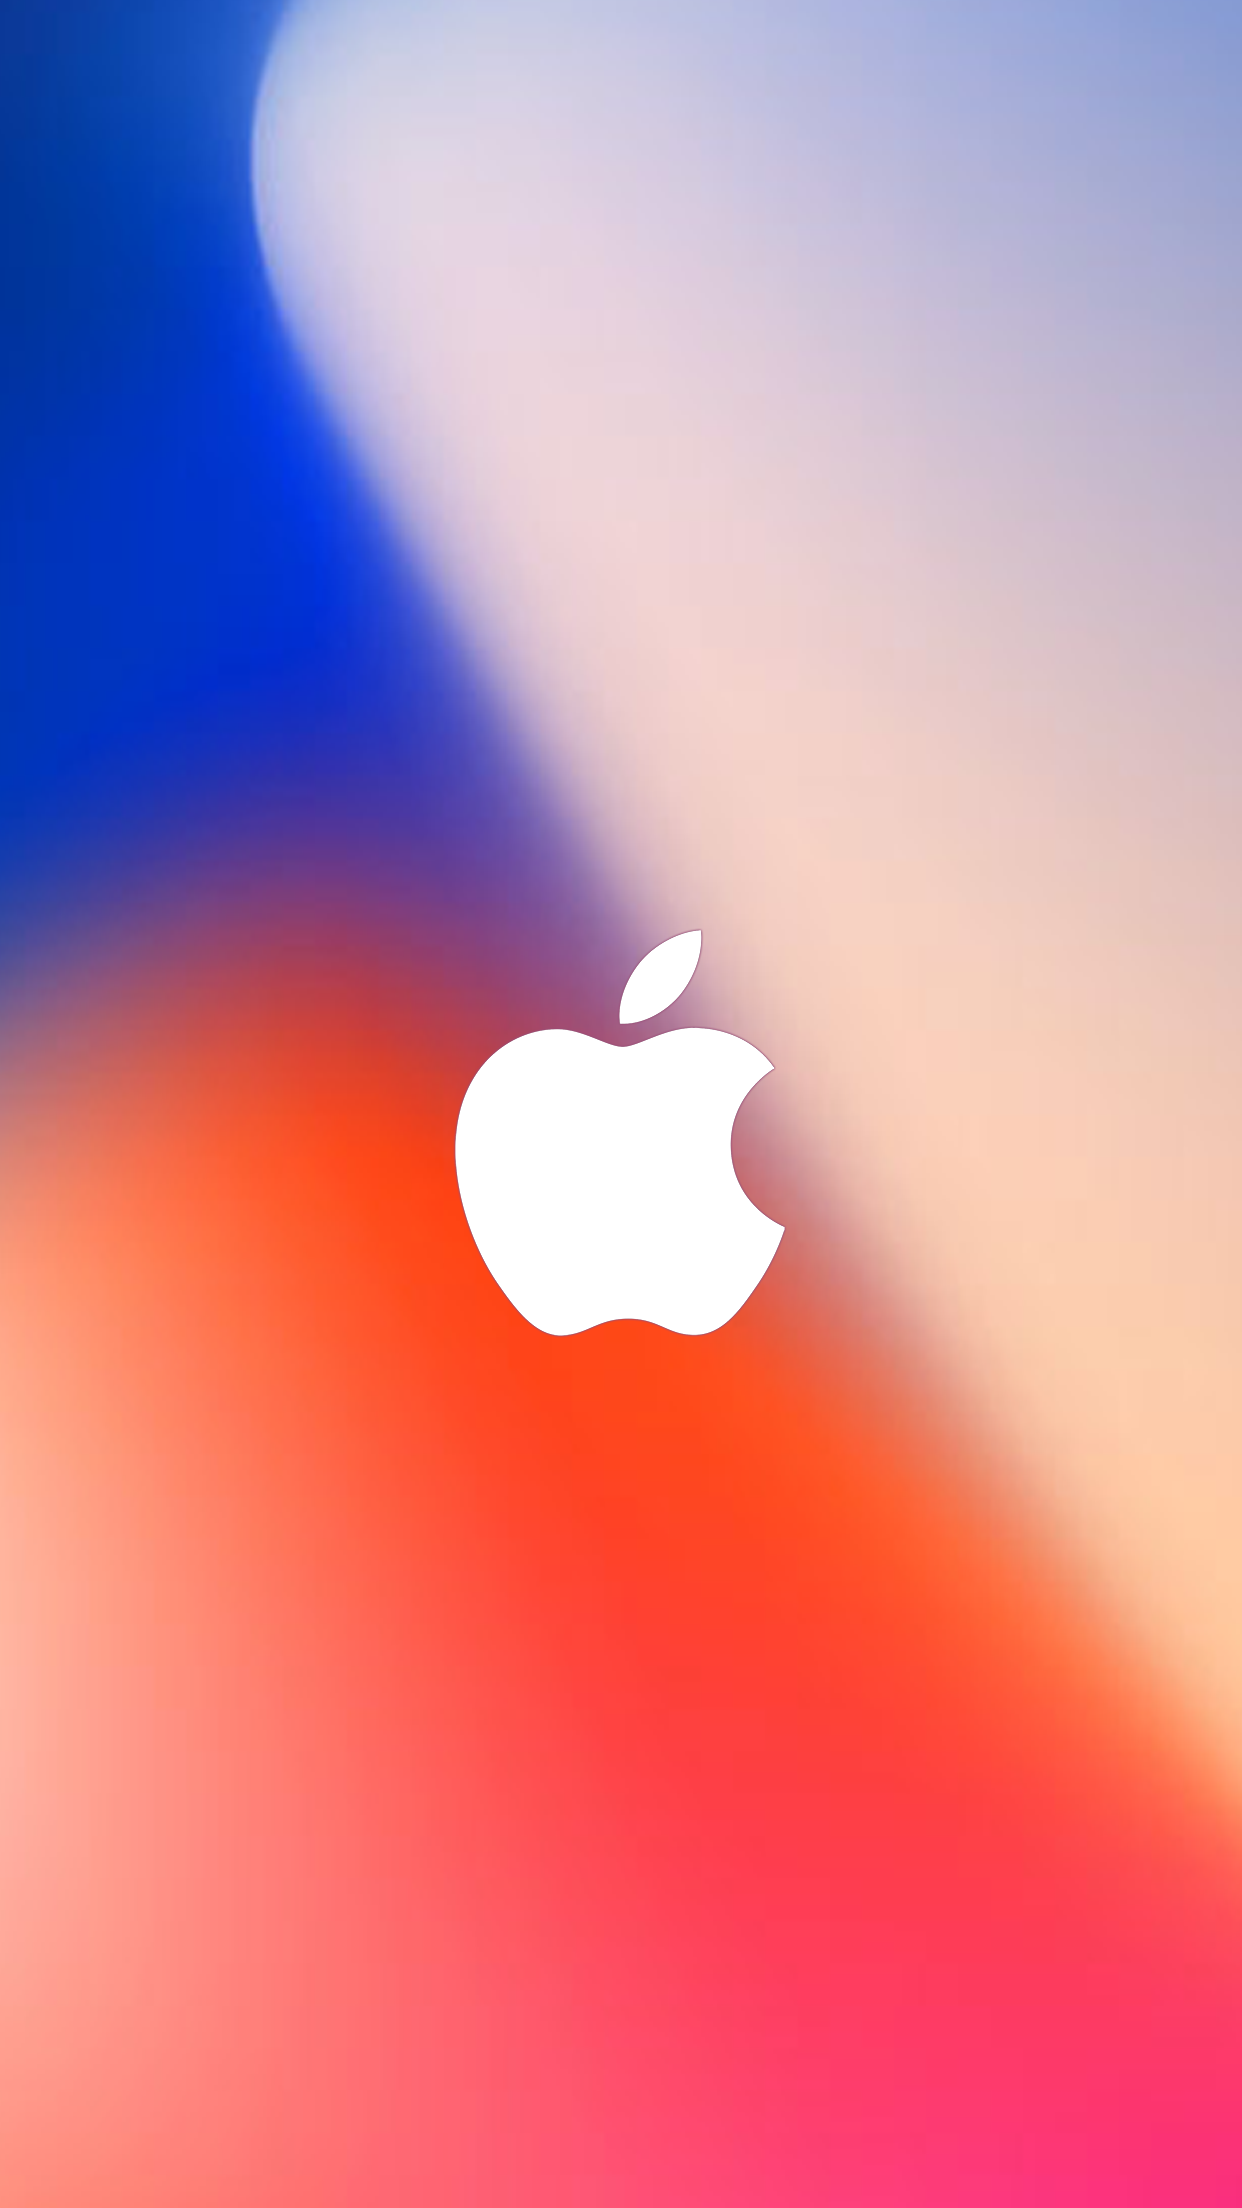 iPhone 8 event wallpapers